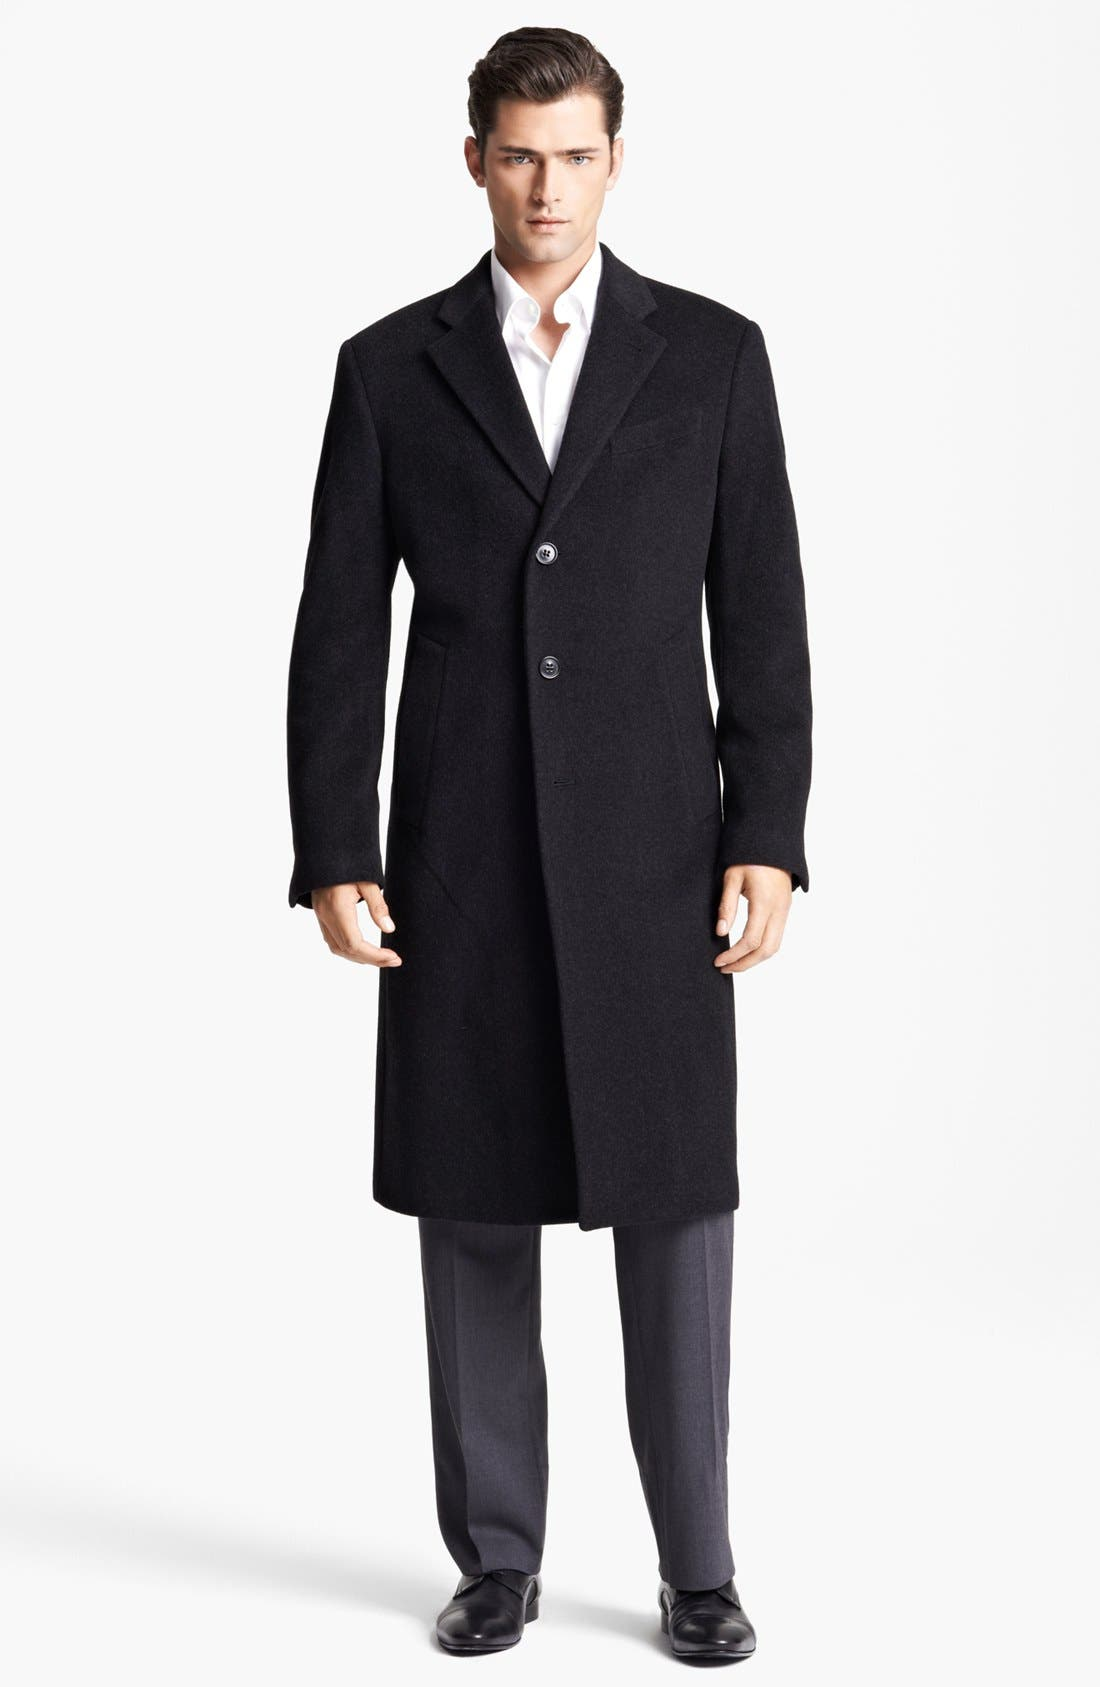 Alternate Image 1 Selected - Armani Collezioni 'Executive' Wool Top Coat (Online Only)